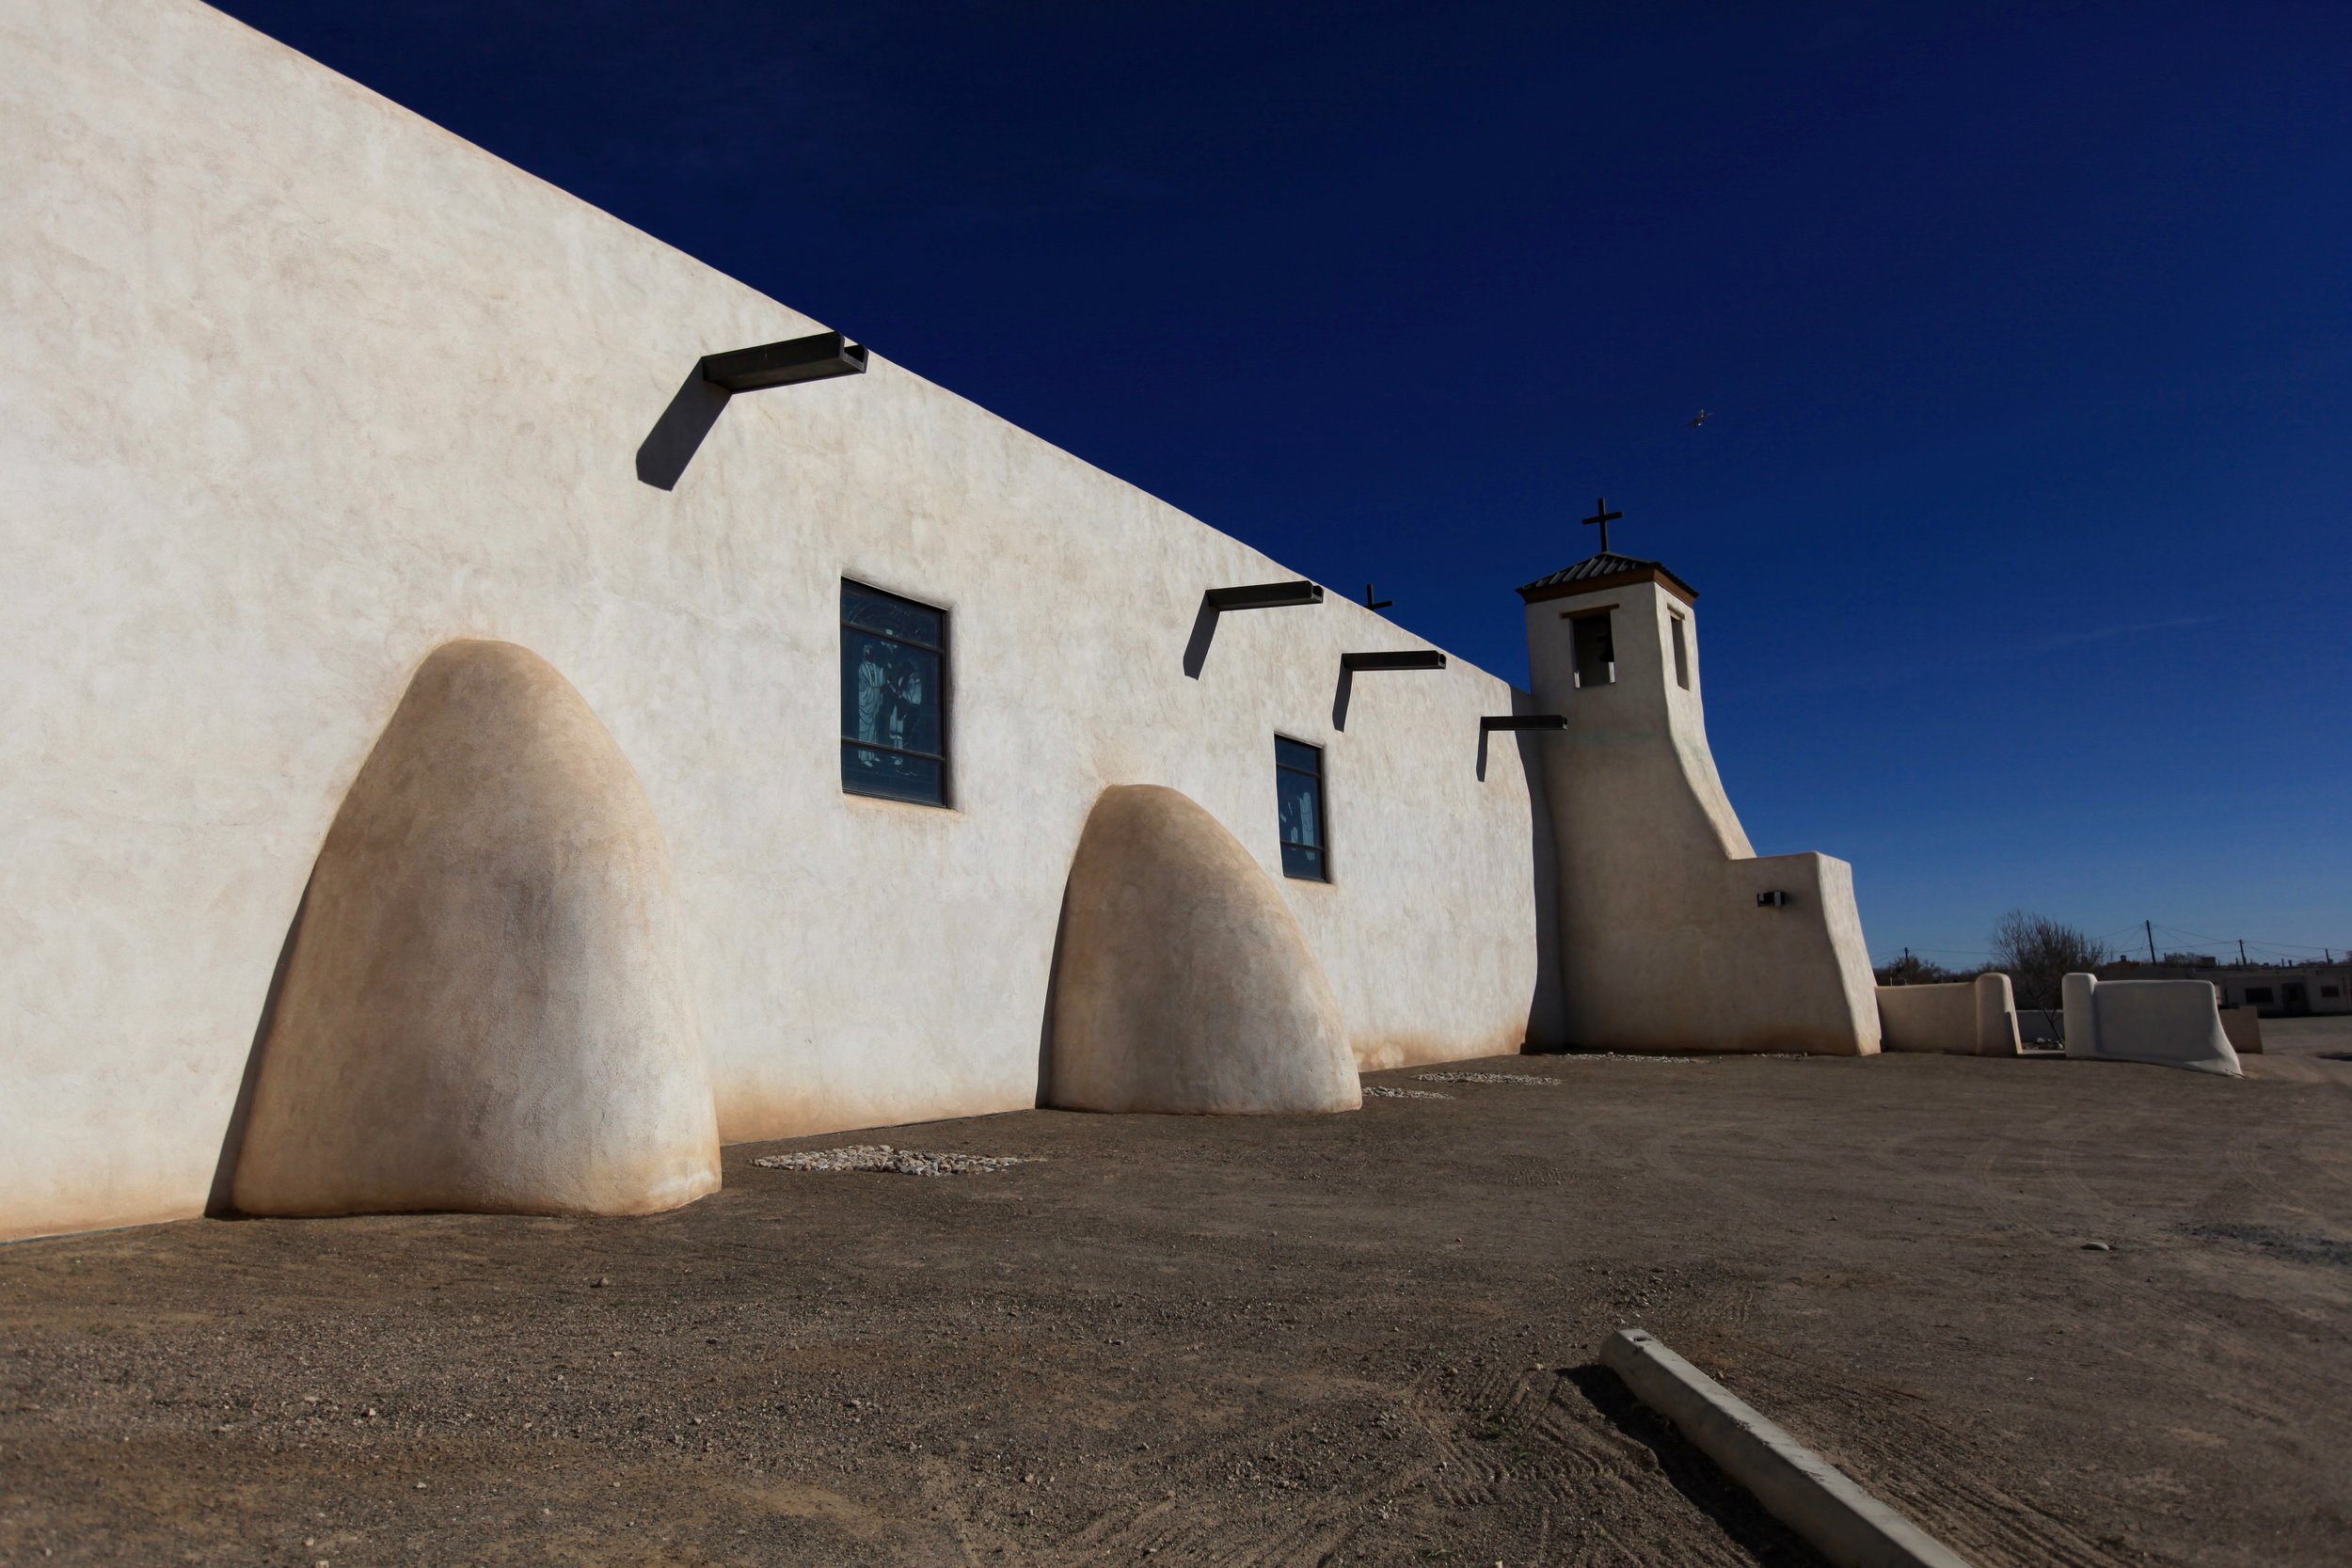 St. Augustine's Mission Church, Isleta Pueblo, rebuilt in 1716 on an earlier foundation.